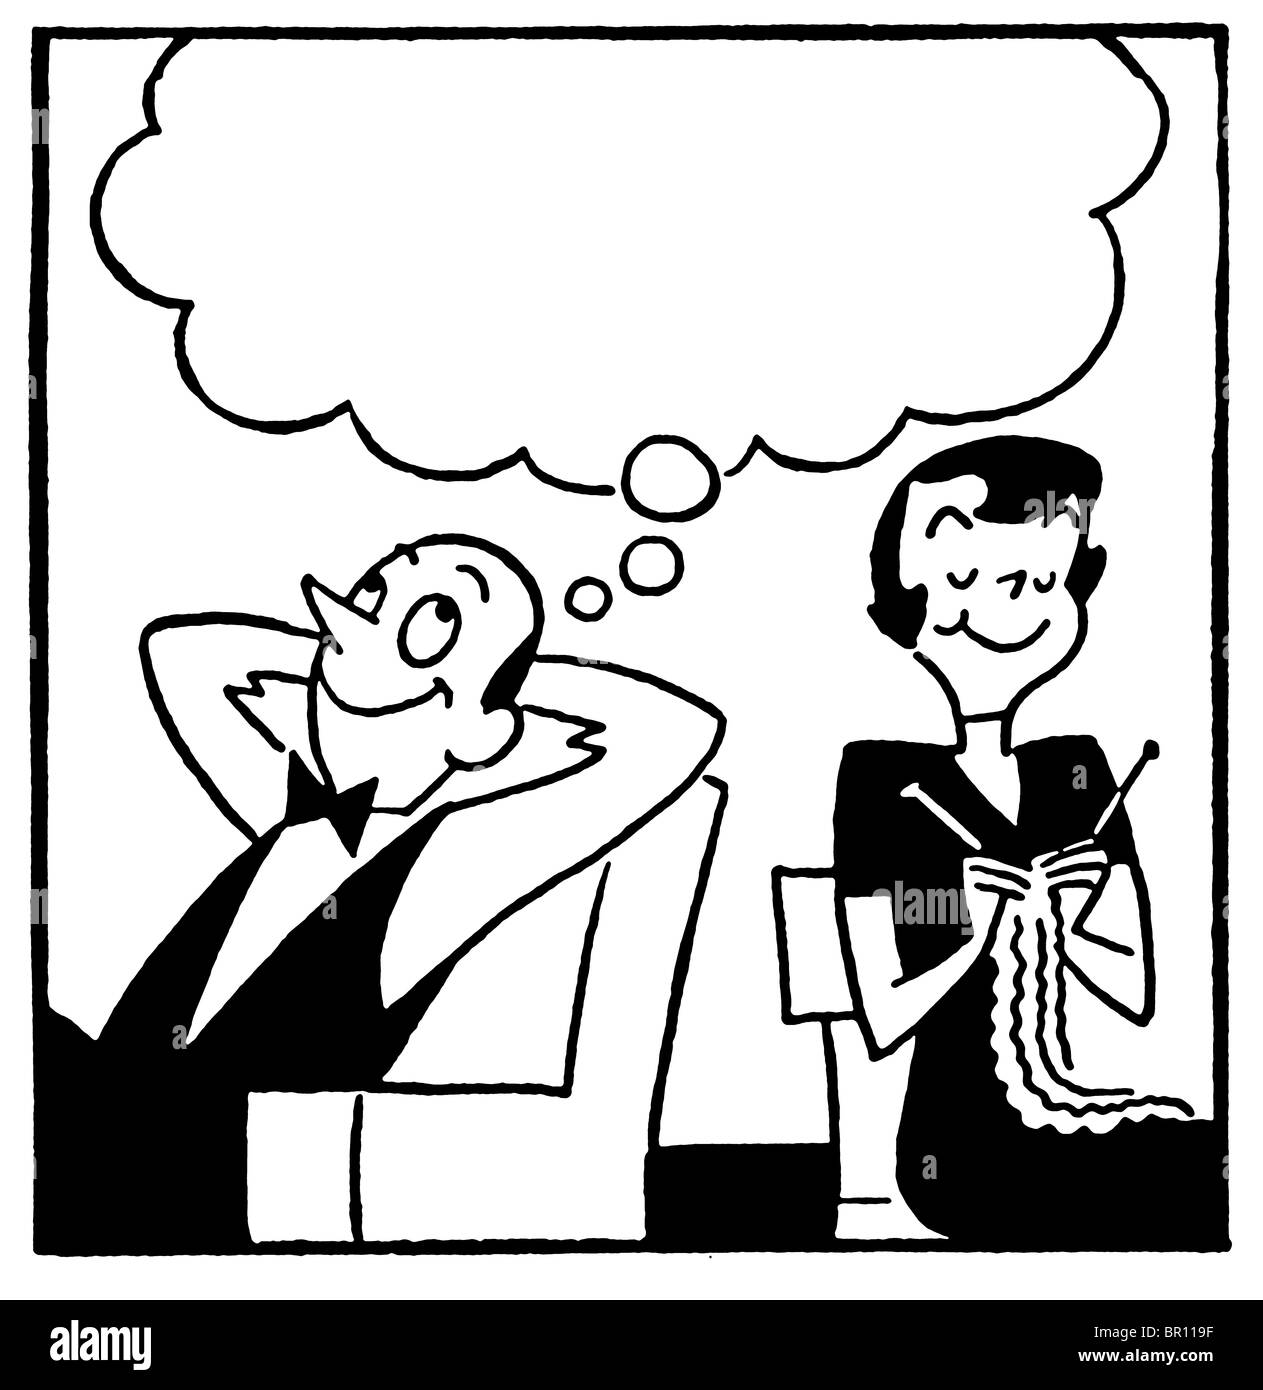 A black and white version of a cartoon style image of a couple with a large speech bubble above - Stock Image